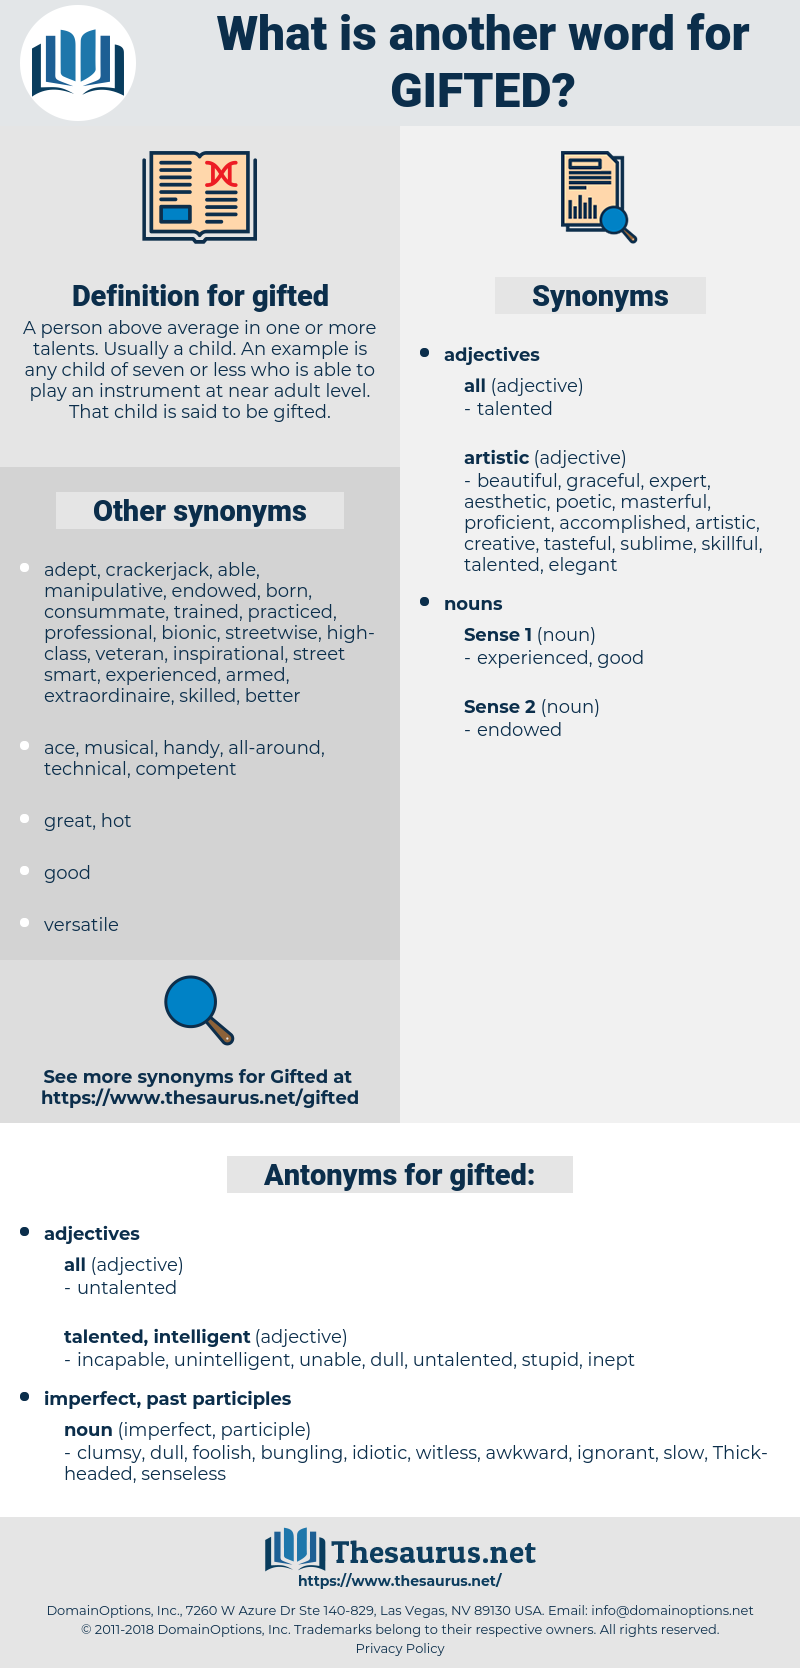 gifted, synonym gifted, another word for gifted, words like gifted, thesaurus gifted